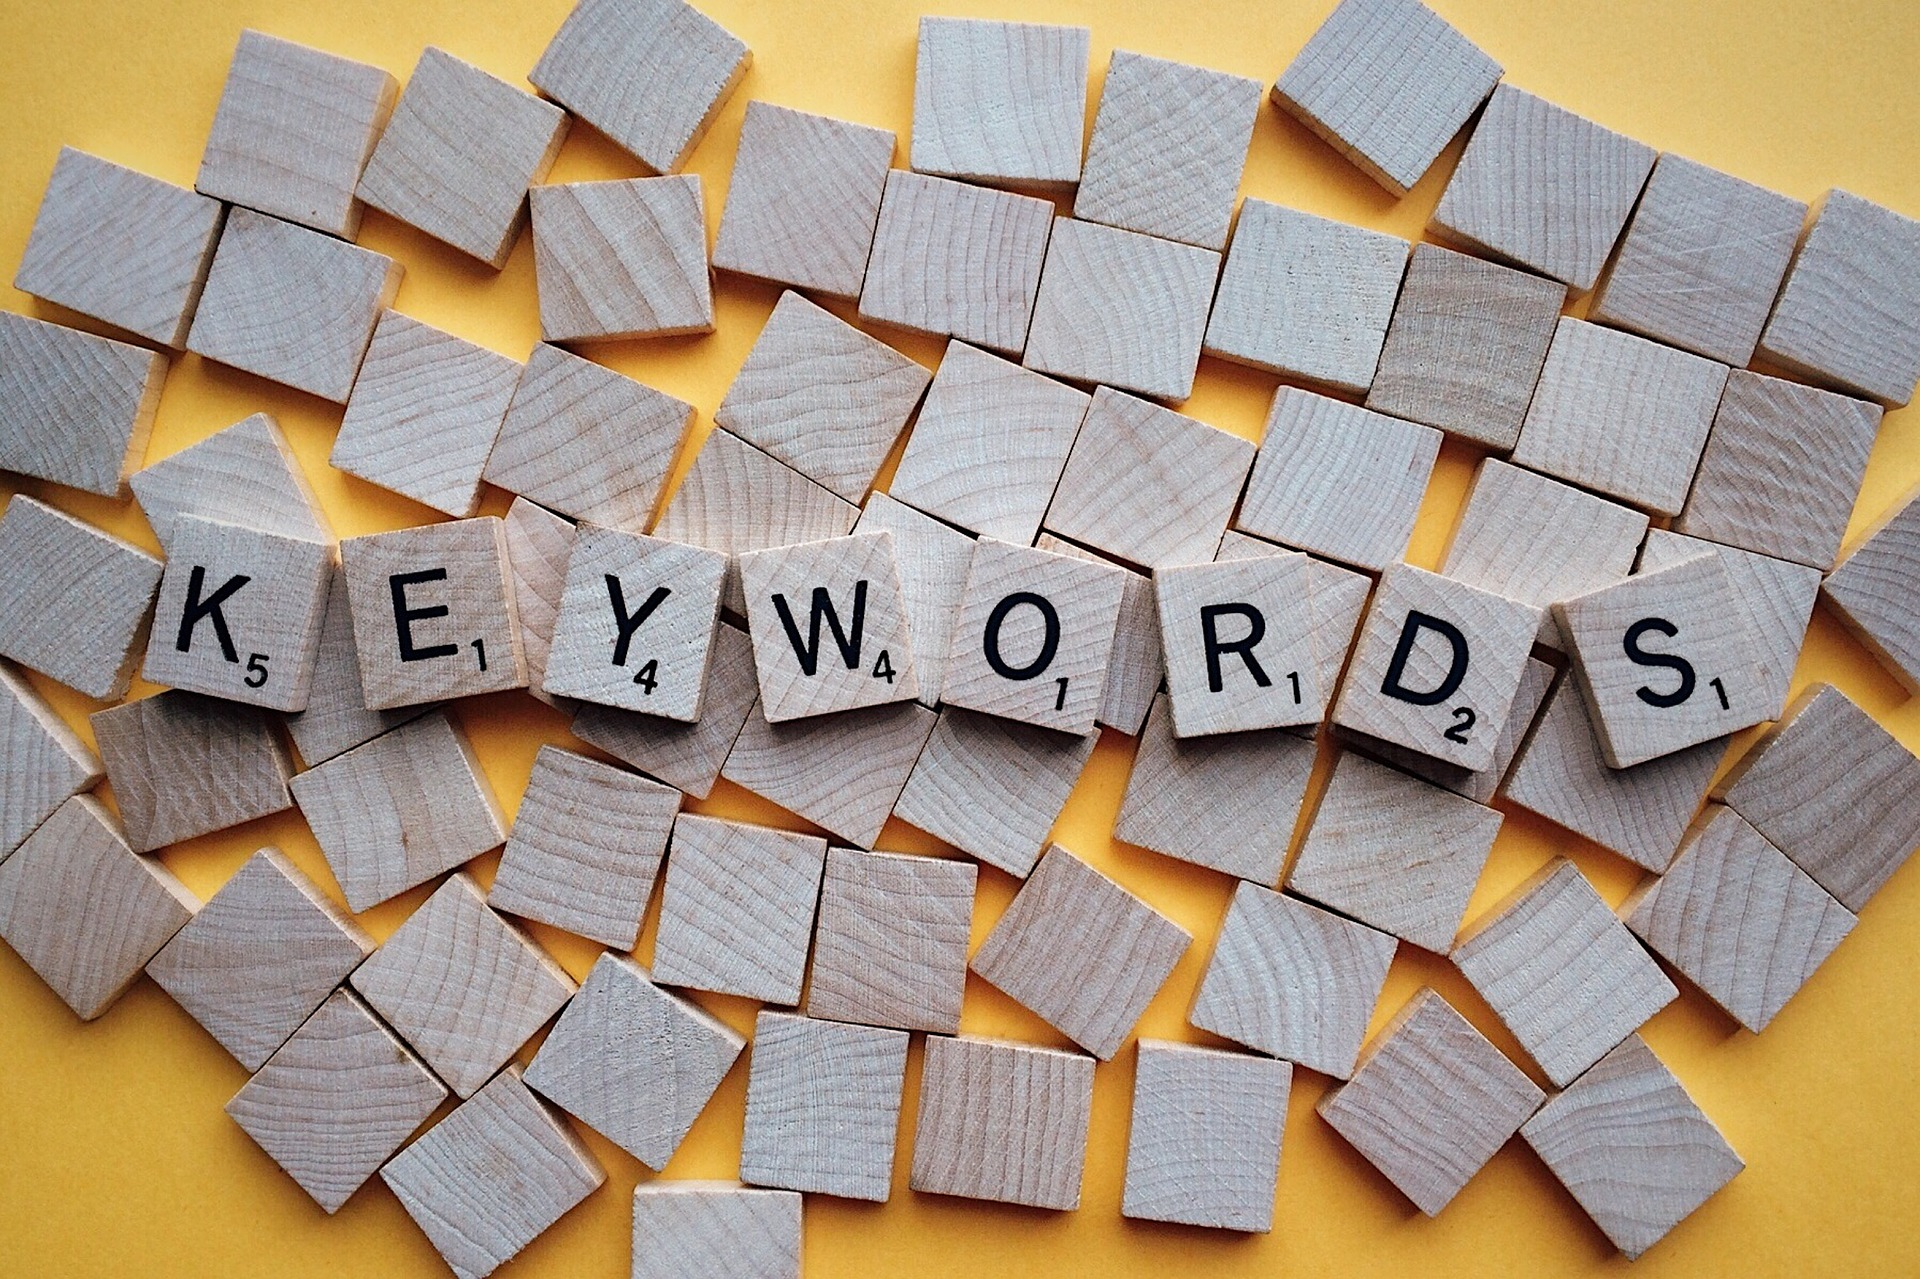 How To Research Keyword Competition – The Quickest Way To Page 1 Ranking